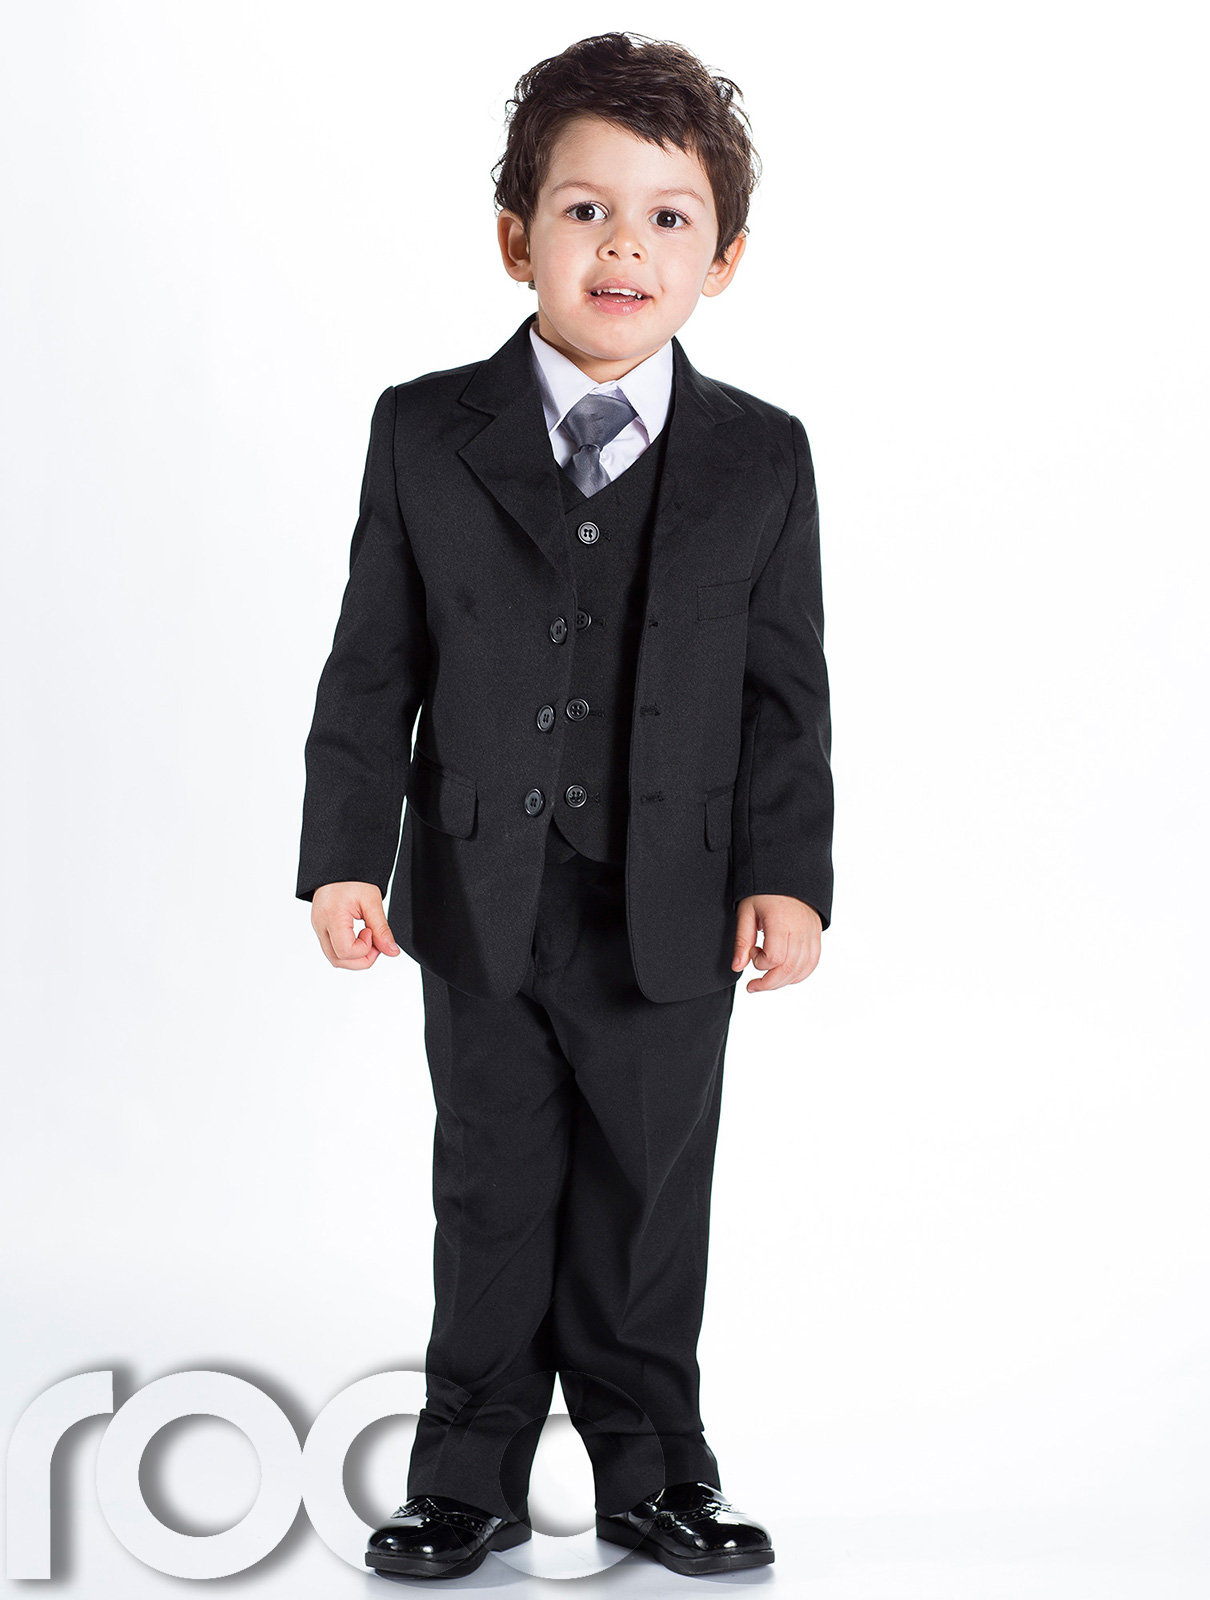 You searched for: baby black suit! Etsy is the home to thousands of handmade, vintage, and one-of-a-kind products and gifts related to your search. No matter what you're looking for or where you are in the world, our global marketplace of sellers can help you find unique and affordable options. Let's get started!